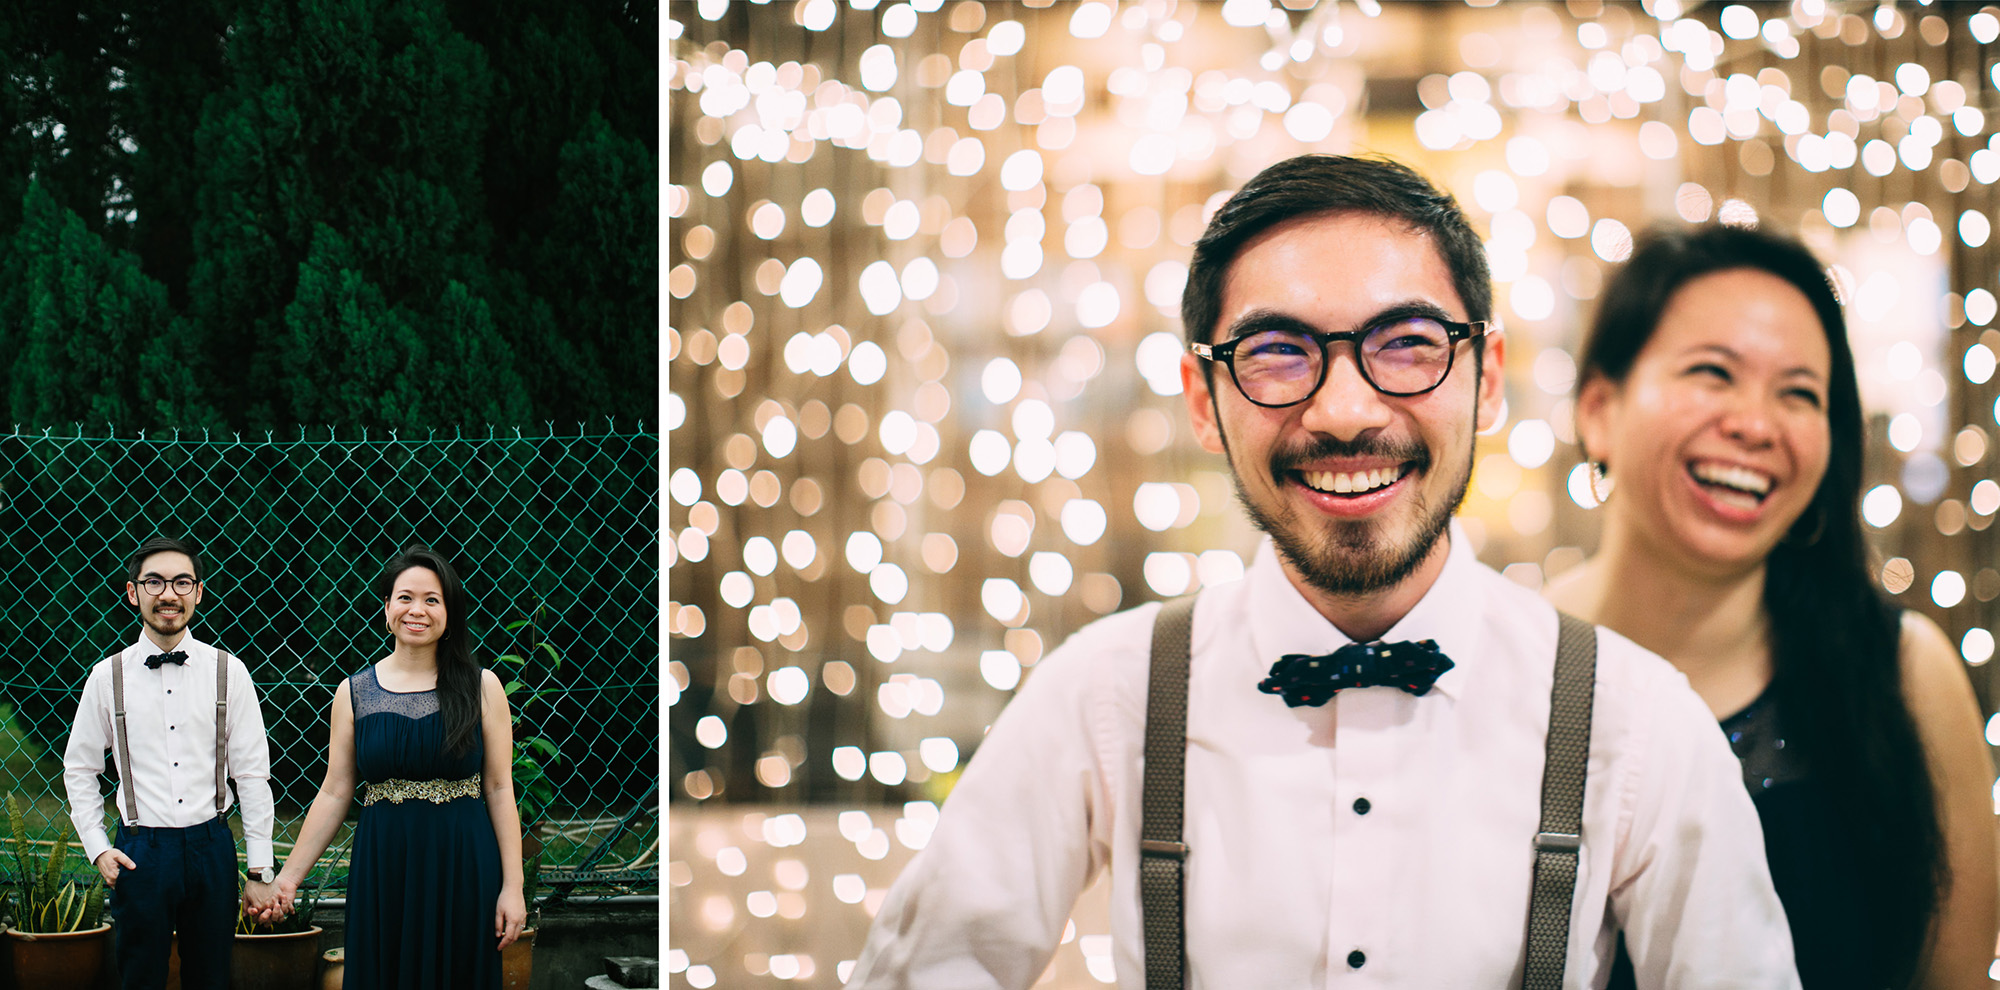 84-hellojanelee-sam grace-malaysia-wedding-day